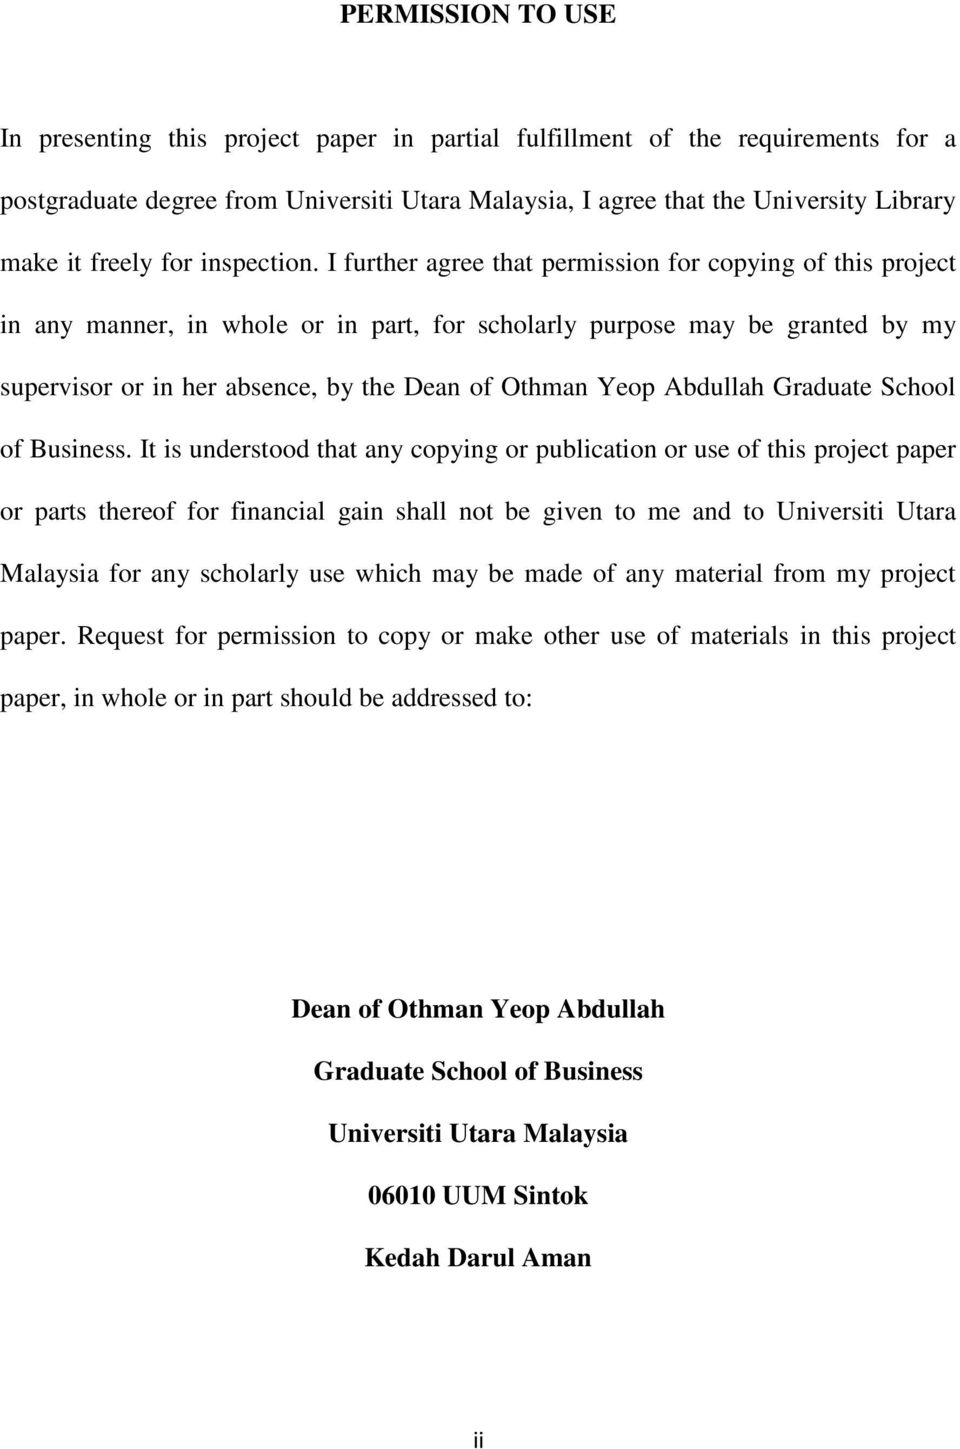 I further agree that permission for copying of this project in any manner, in whole or in part, for scholarly purpose may be granted by my supervisor or in her absence, by the Dean of Othman Yeop